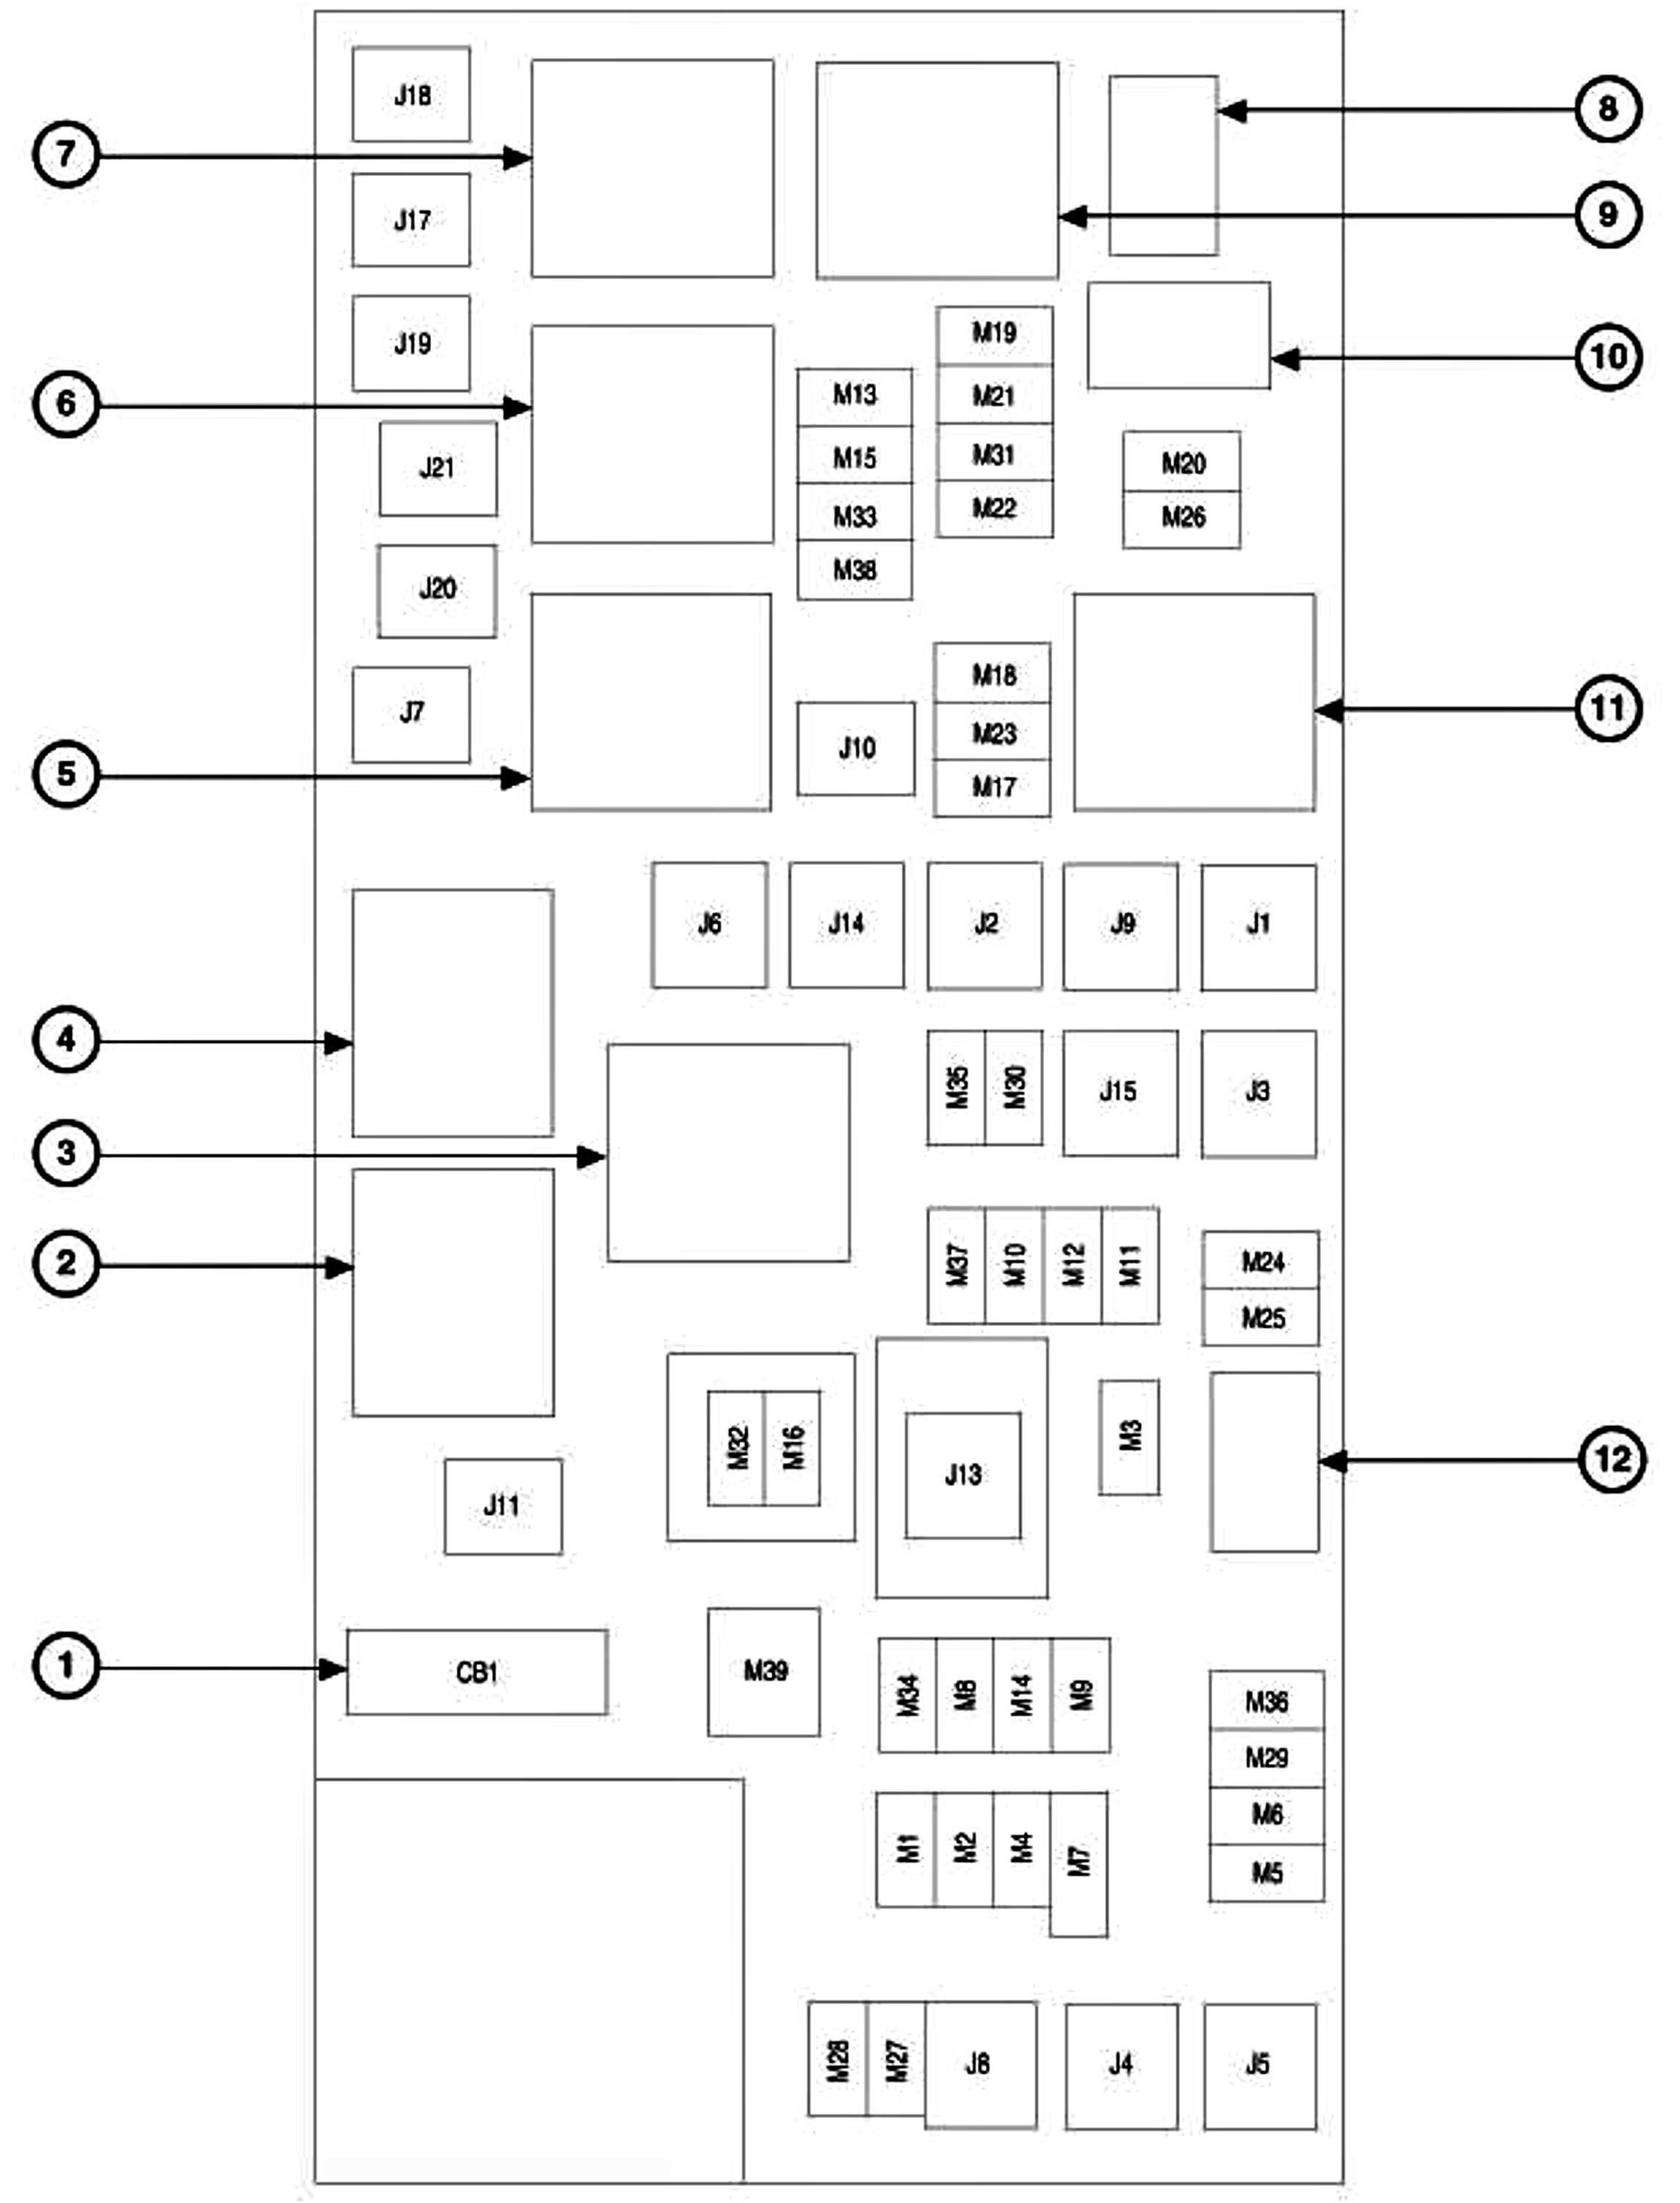 f65dad757704258fddc82721f010e9f2 2006 jeep commander fuse box diagram jpeg carimagescolay jeep commander fuse box diagram at webbmarketing.co